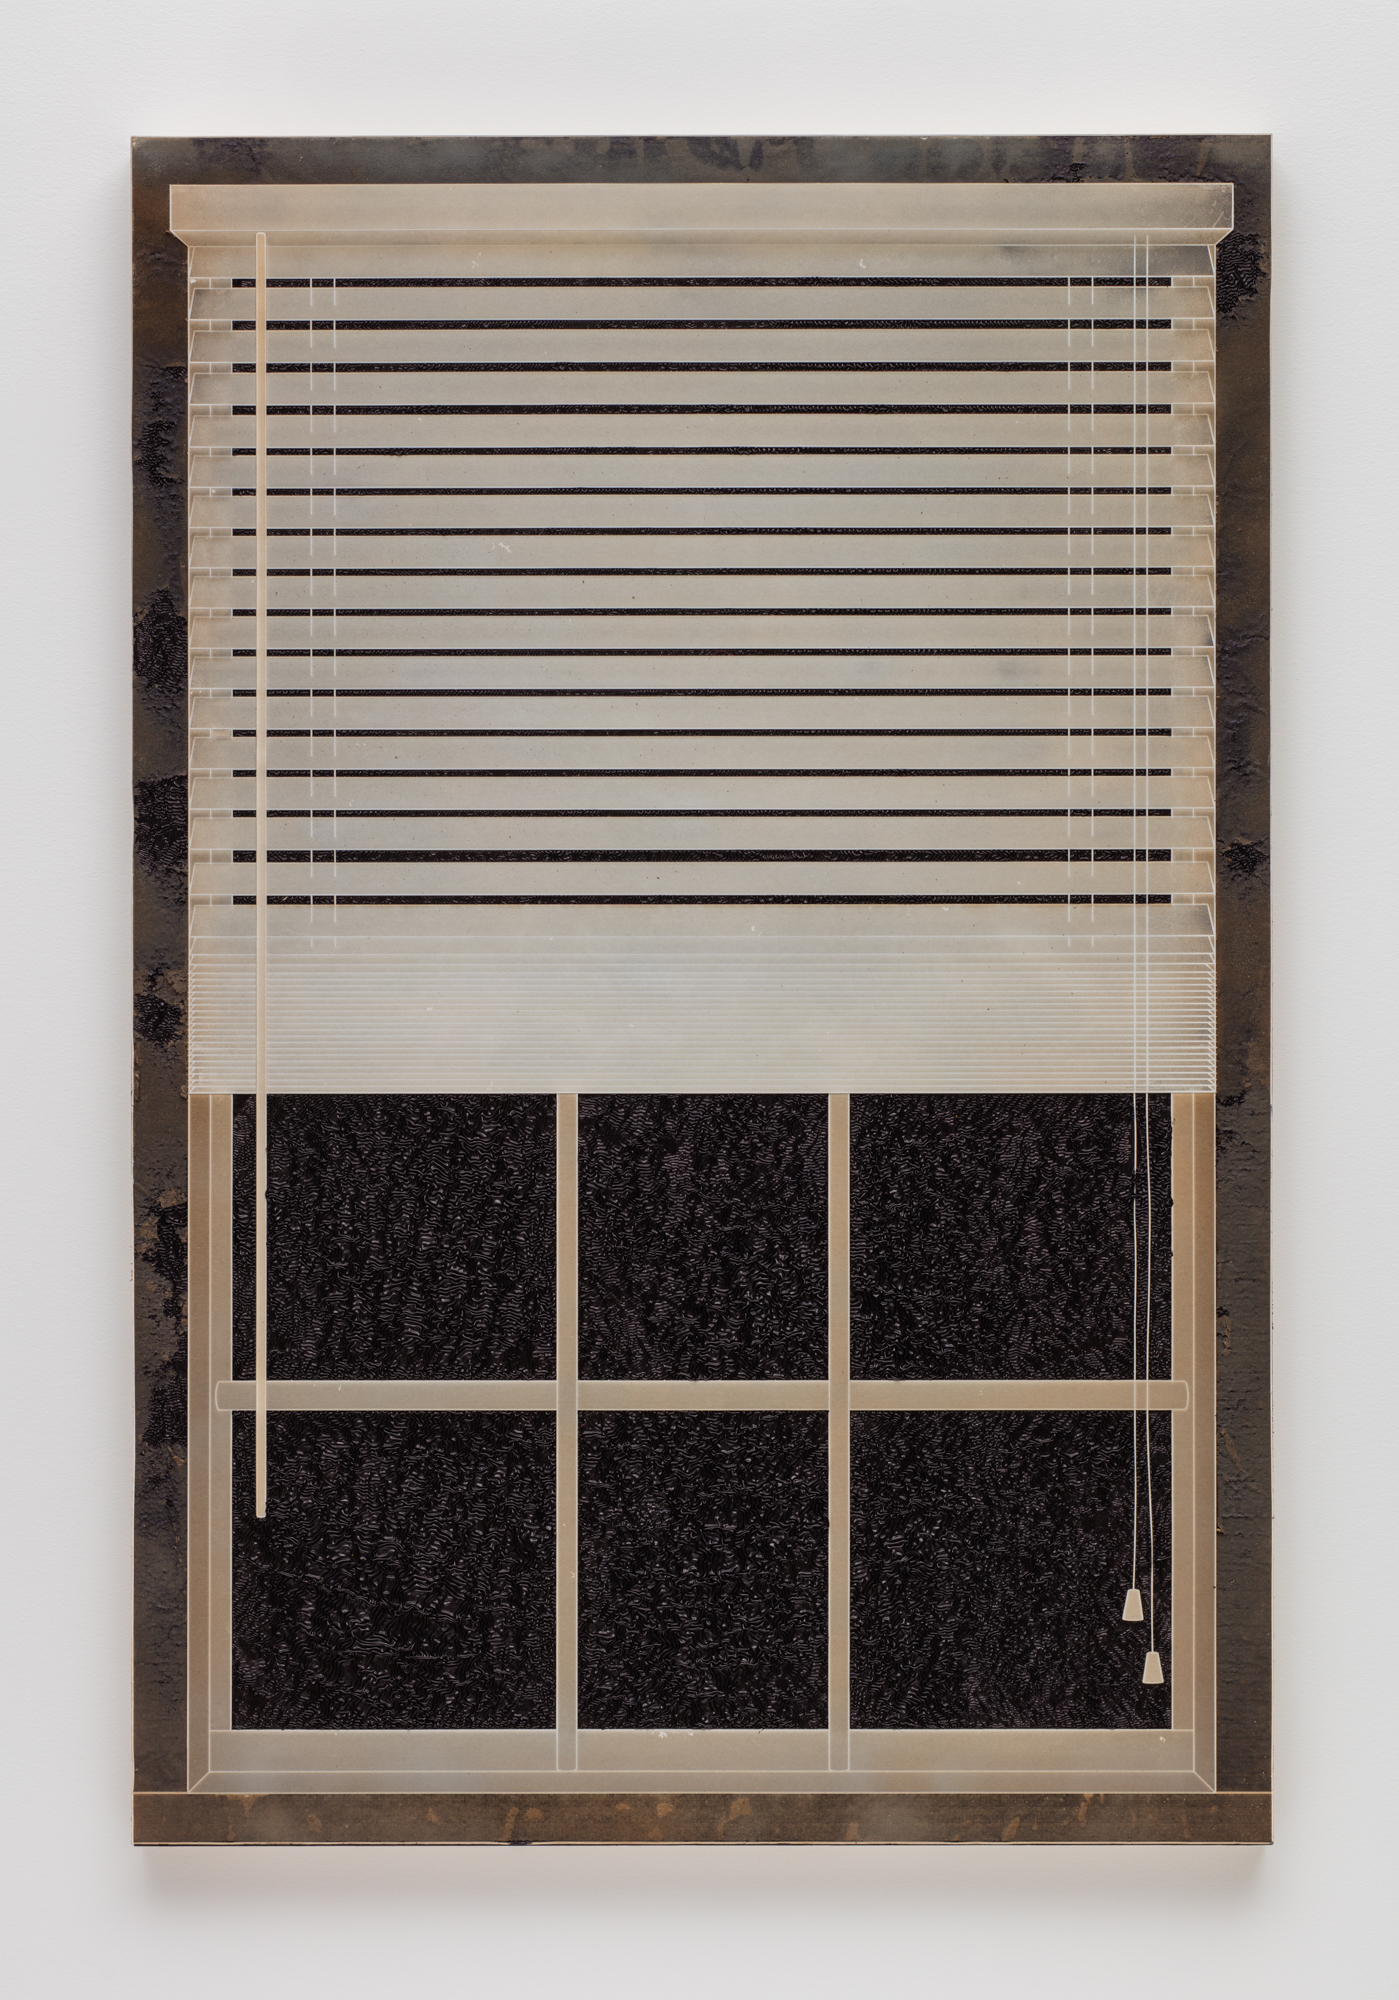 Analia Saban, Pleated Ink, Window with Blinds, 2017.  Laser-sculpted paper on ink on wood panel.  152.4 x 101.6 x 5.2 cm. Photo by Brian Forrest.